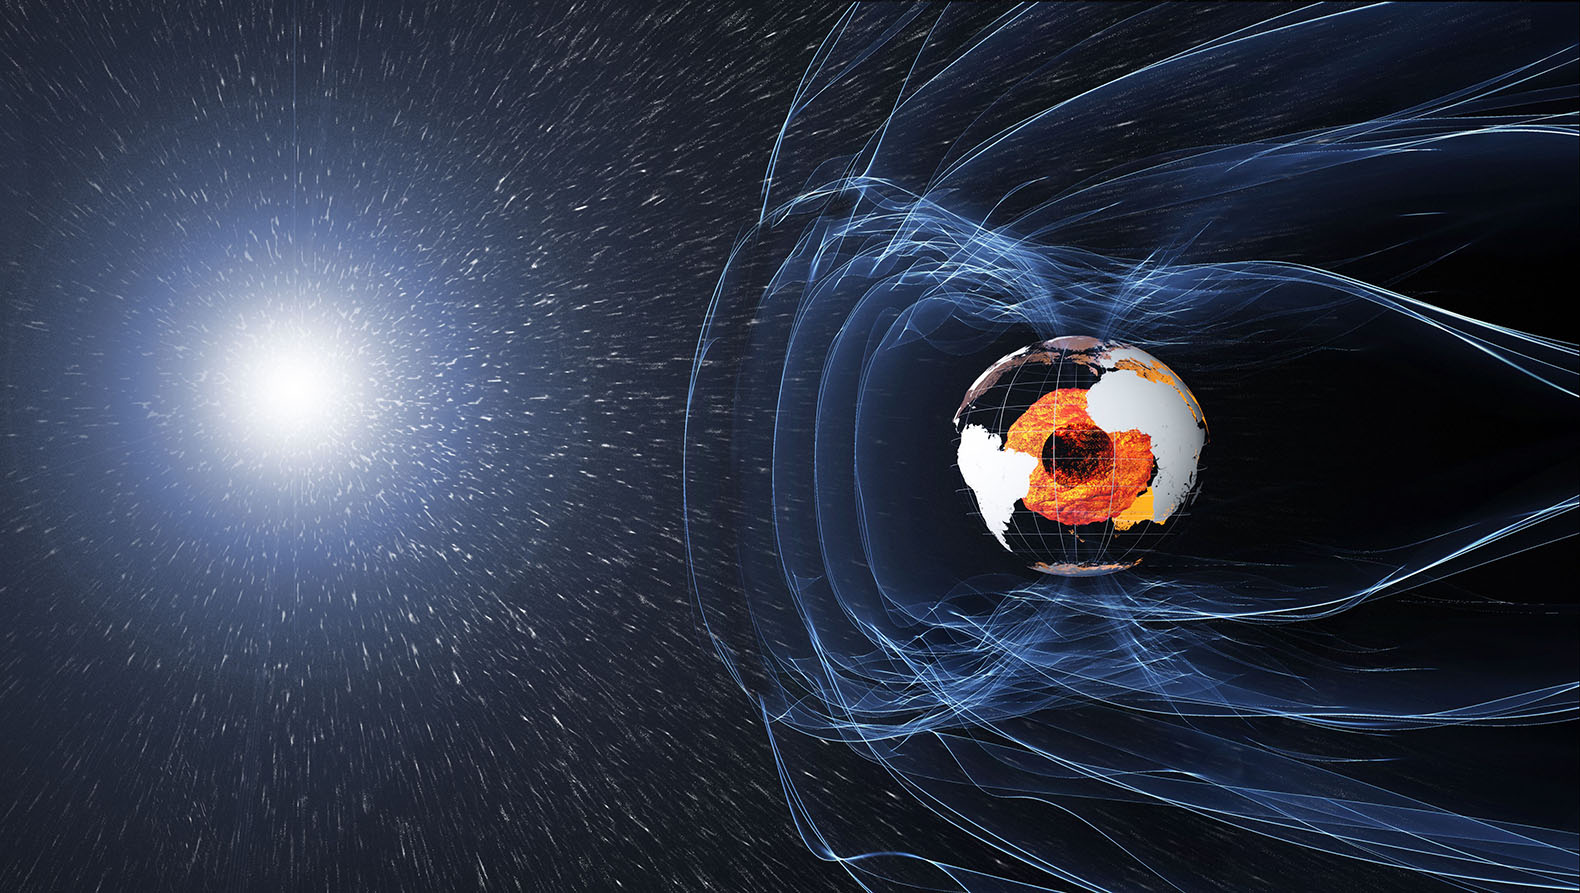 The Earth's magnetic field is weakening ten times faster than expected